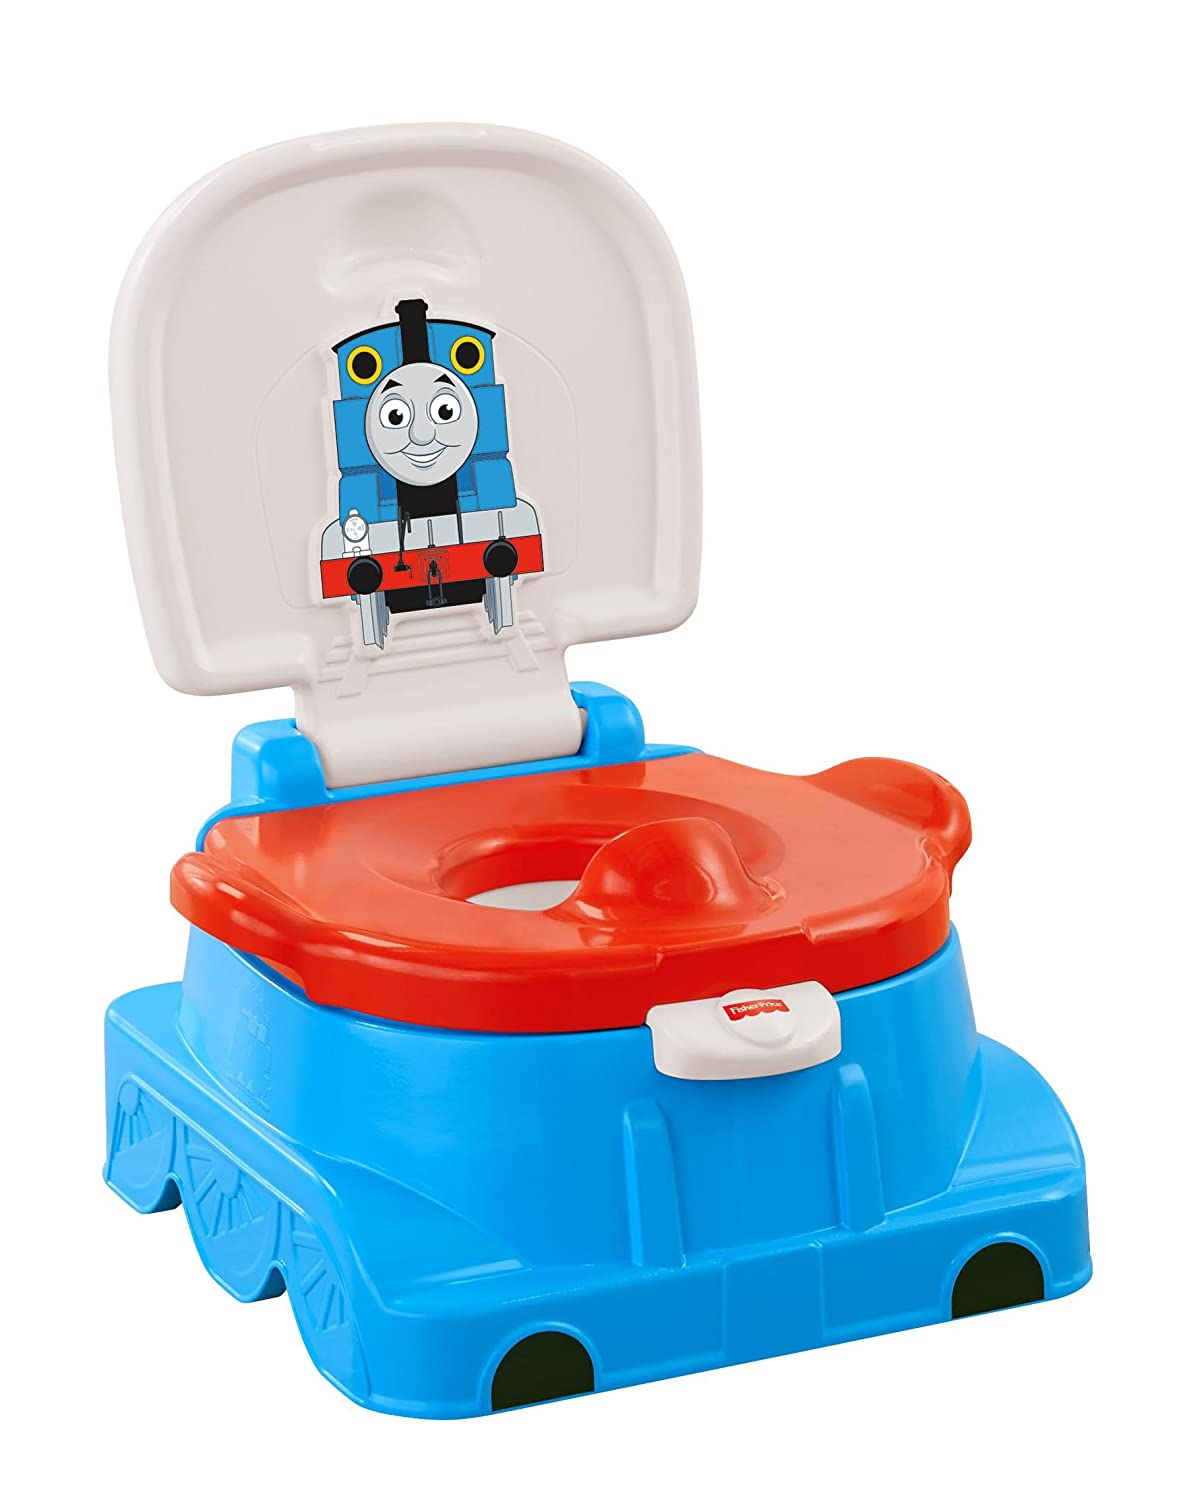 singing potty chair cheap vinyl covers fisher price thomas the tank engine friends railroad